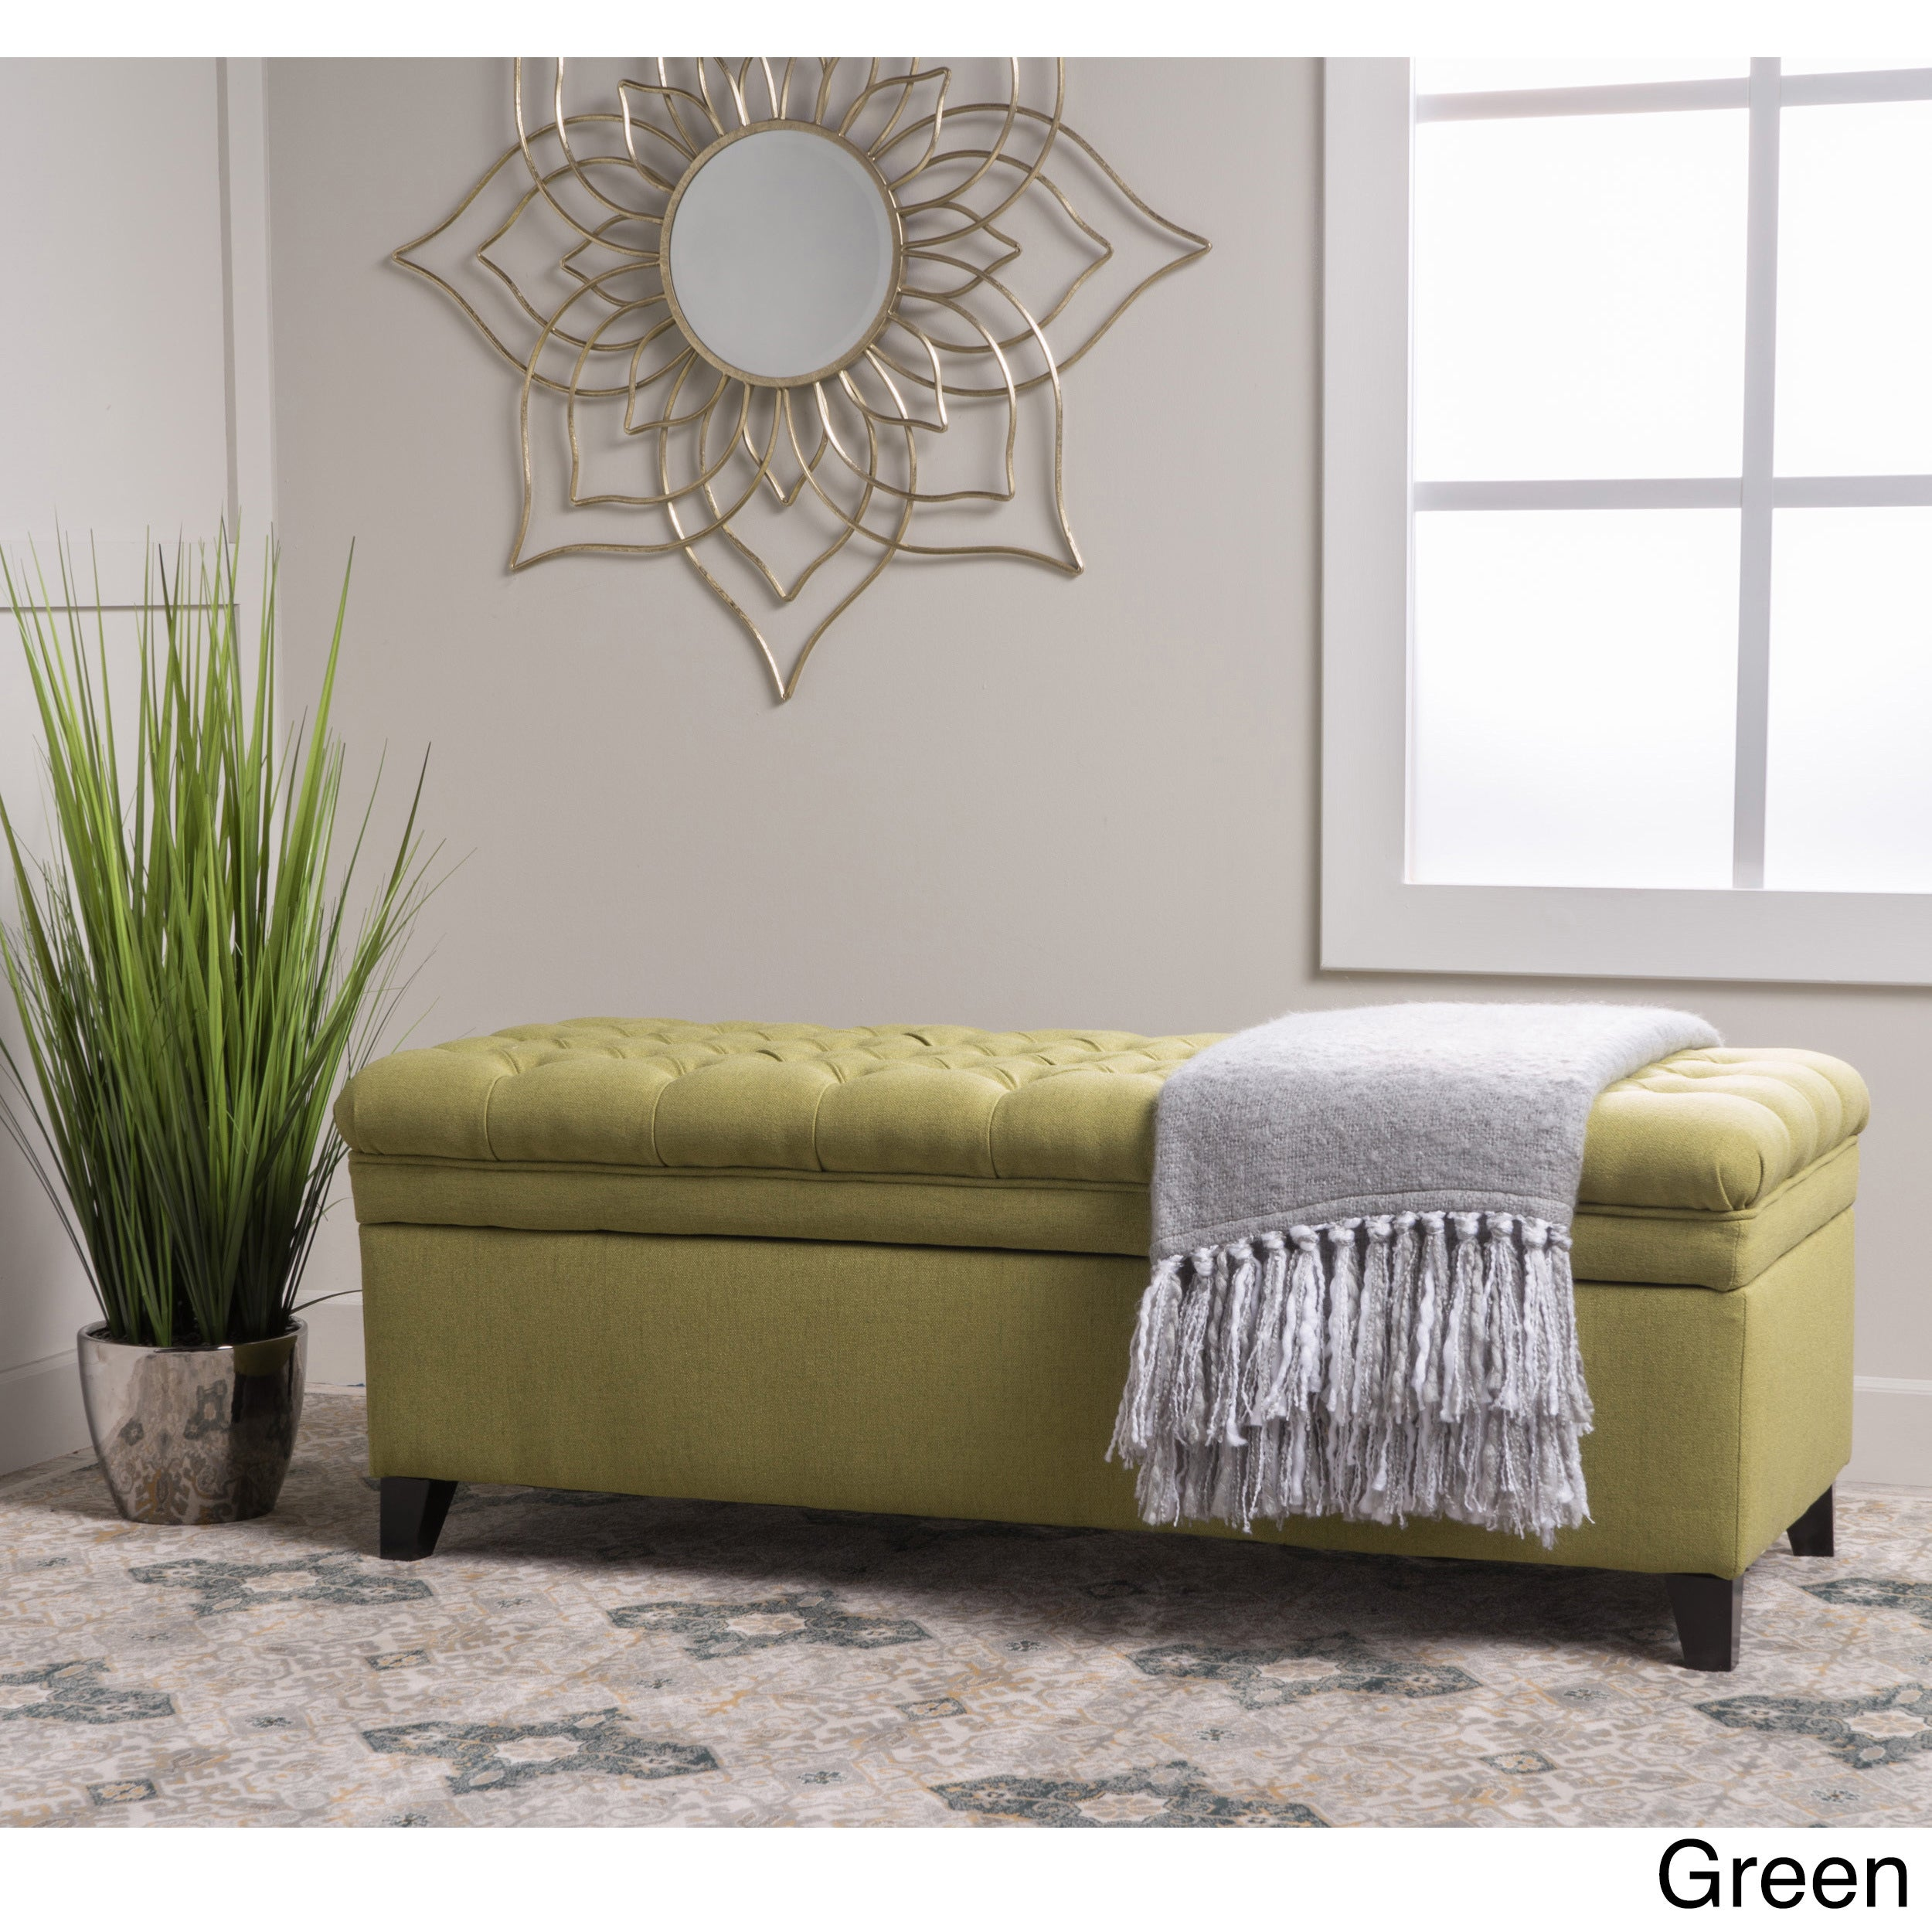 Fabric Storage Bench Microfiber Button Tufted Bedroom Seat: Christopher Knight Home Hastings Tufted Fabric Storage